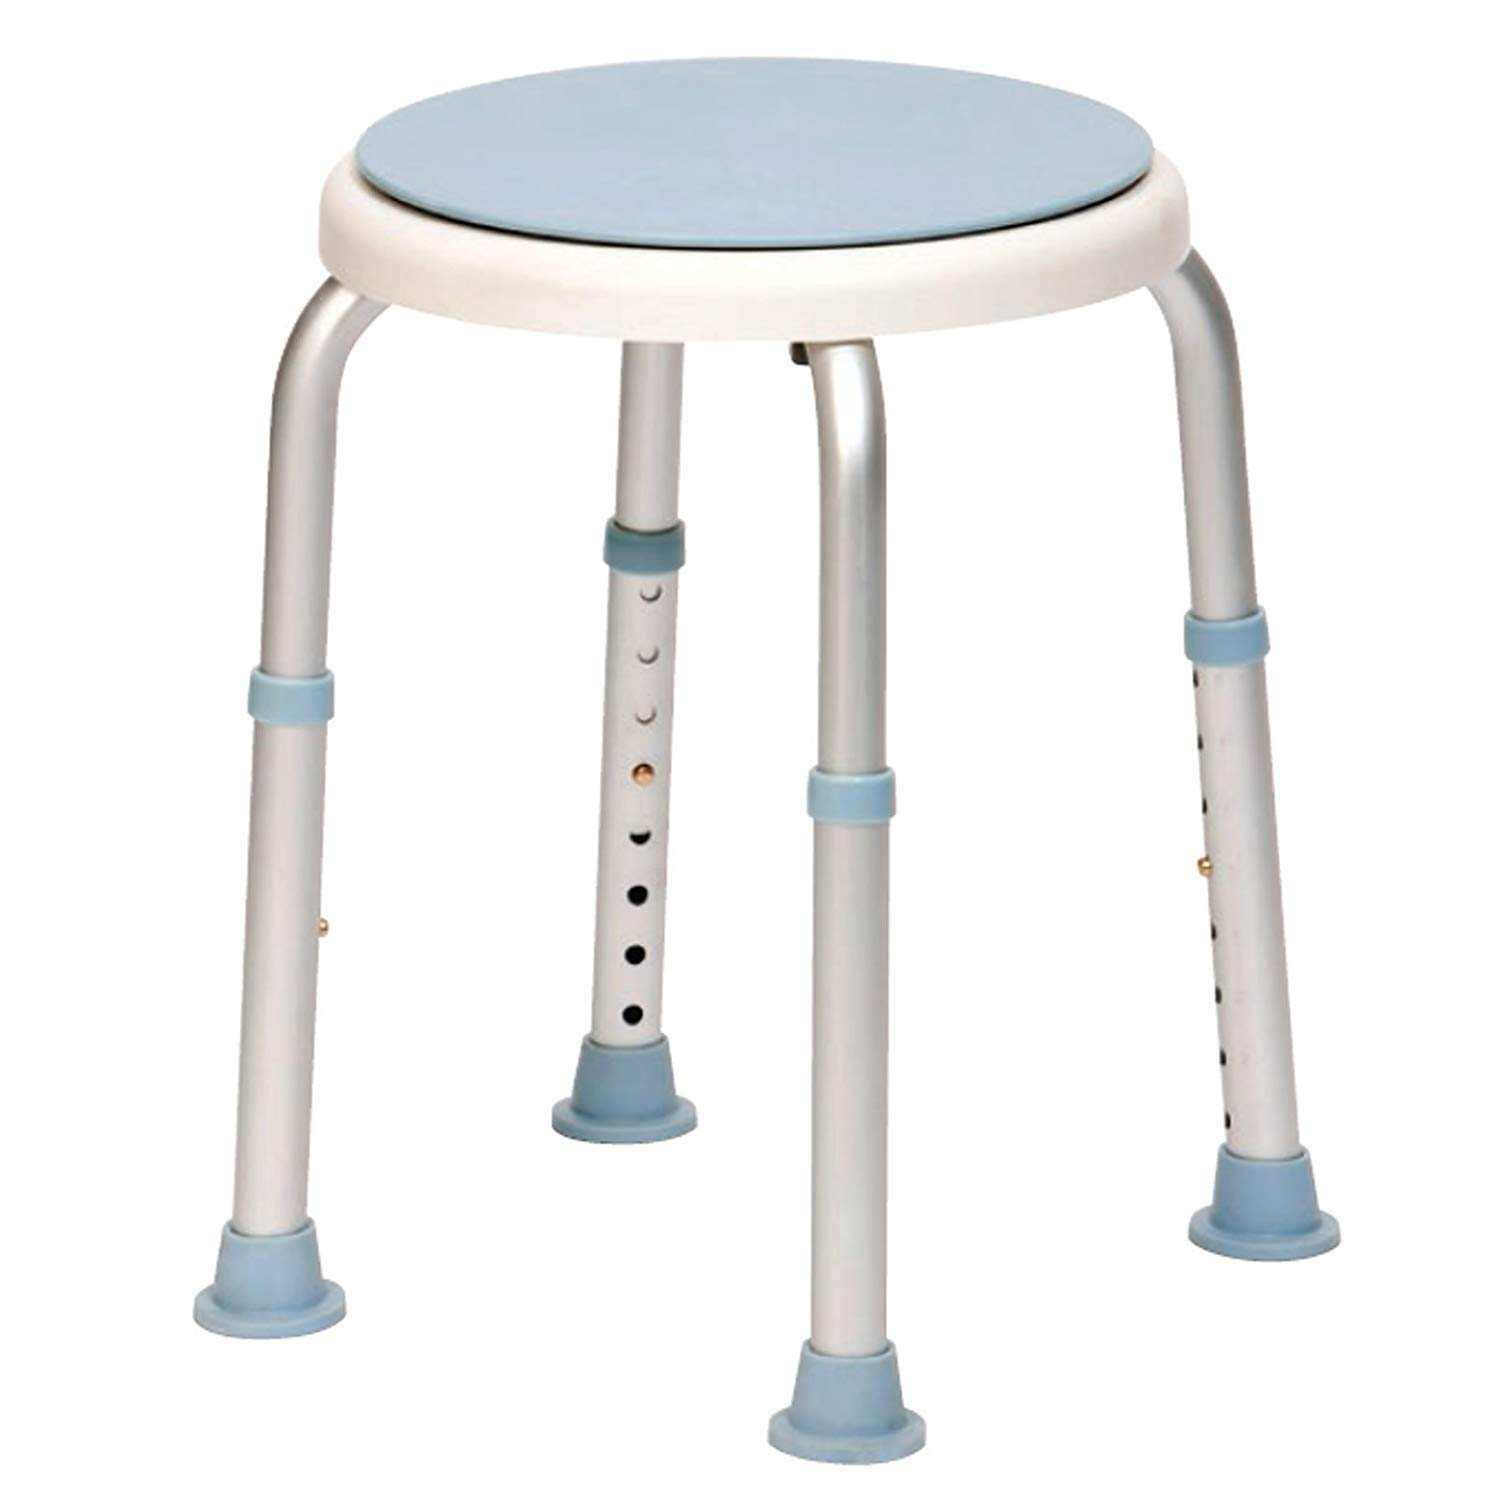 Beauty Drive Rotating Rounded Bath/Shower Stool with Swivel Seat Aluminum Material Suitable for People with Reduced Mobility by BEAUTY--shower stool